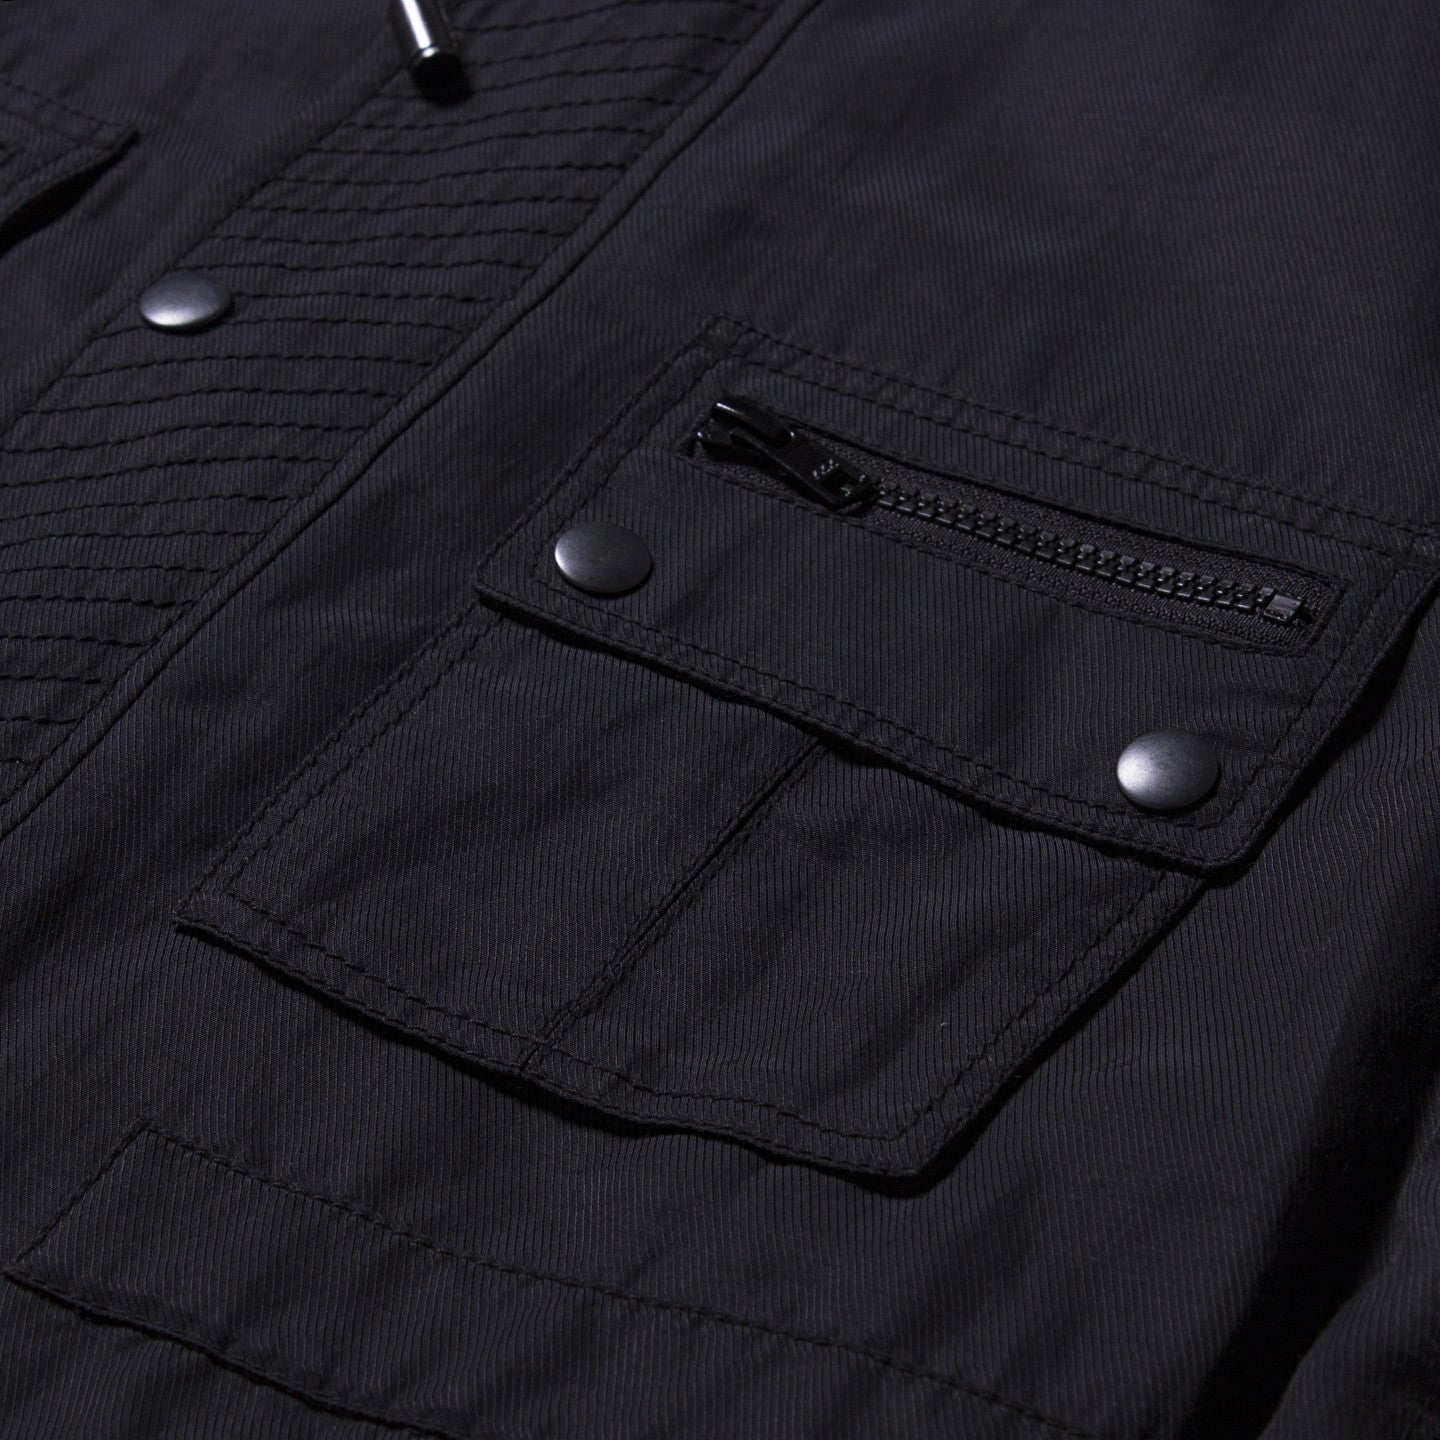 3.1 Phillip Lim / 4 pocket jacket